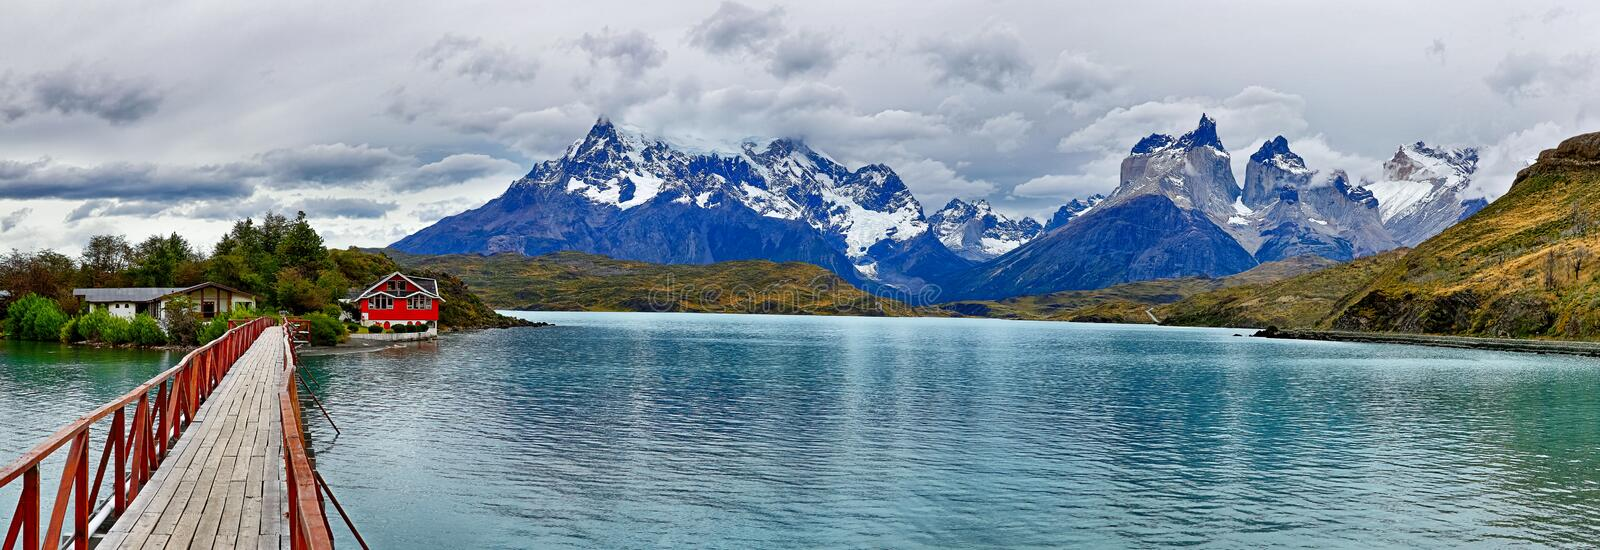 Lac Pehoe chez Torres del Paine N P Patagonia, Chili photos stock